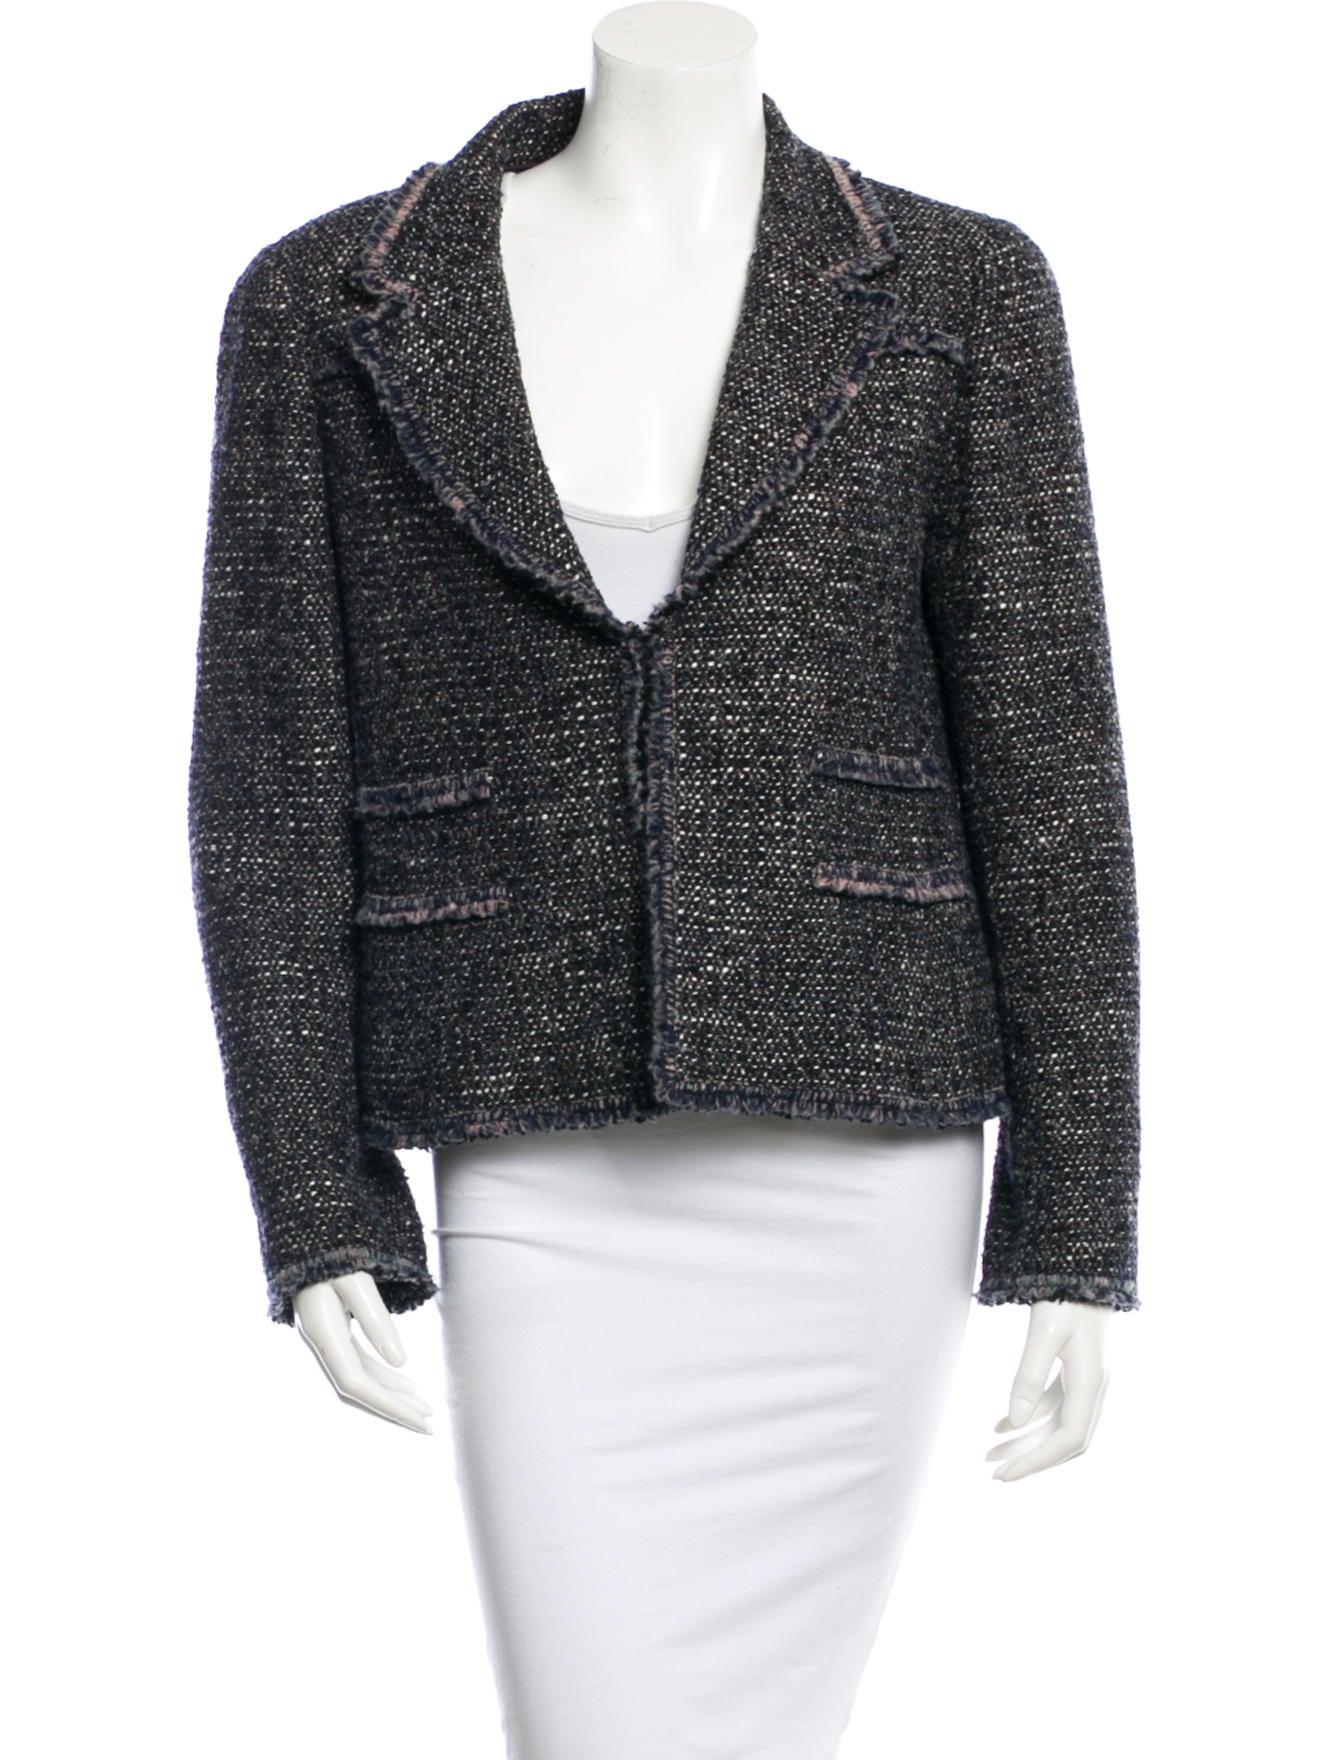 This classic plaid wool tweed blazer for women will elevate the character of any ensemble. Details Created specially for Orvis, this equestrian-inspired version of the classic Glen plaid blazer is made of exceptionally soft Irish wool tweed.